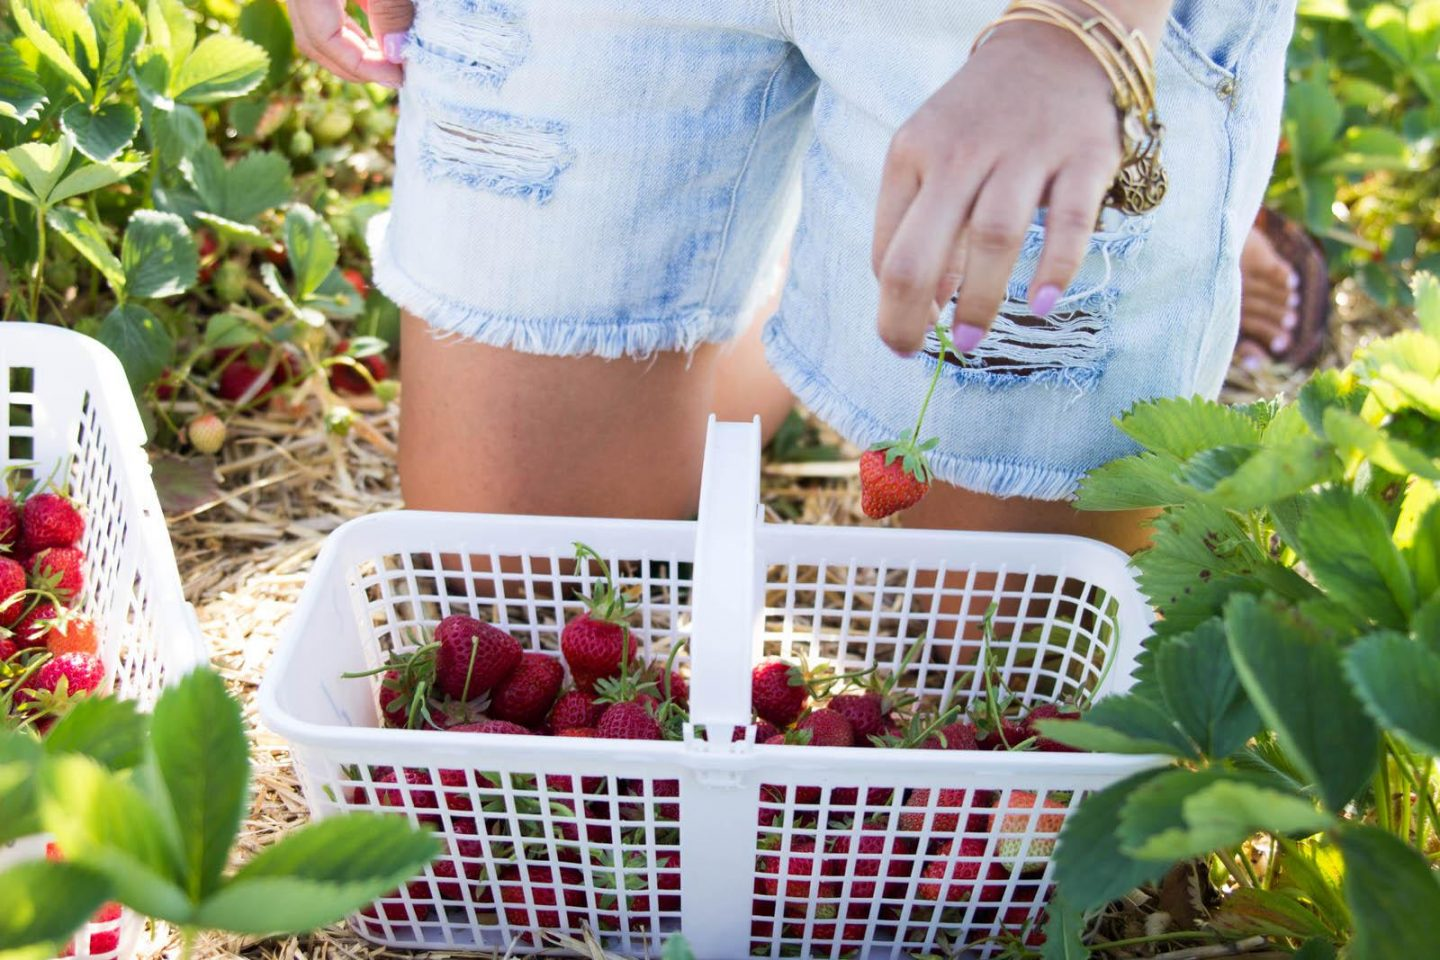 Strawberry Picking06252016_3096